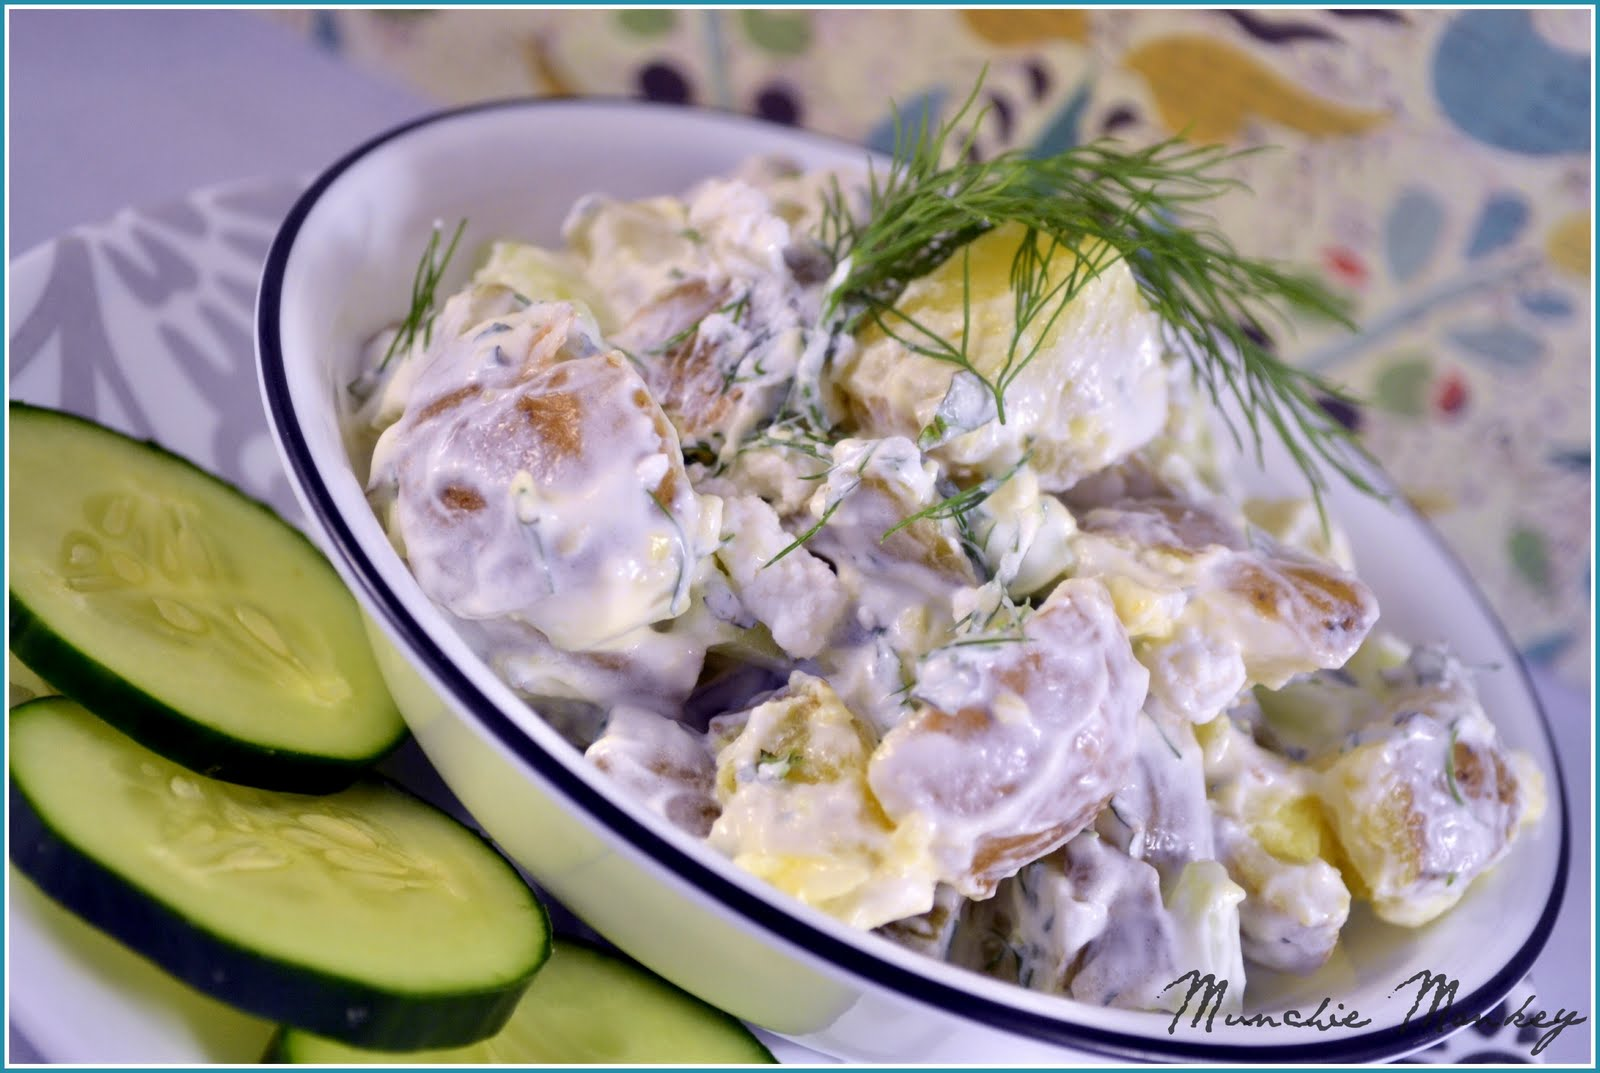 munchie monkey: Daring Cooks: Tzatziki Potato Salad